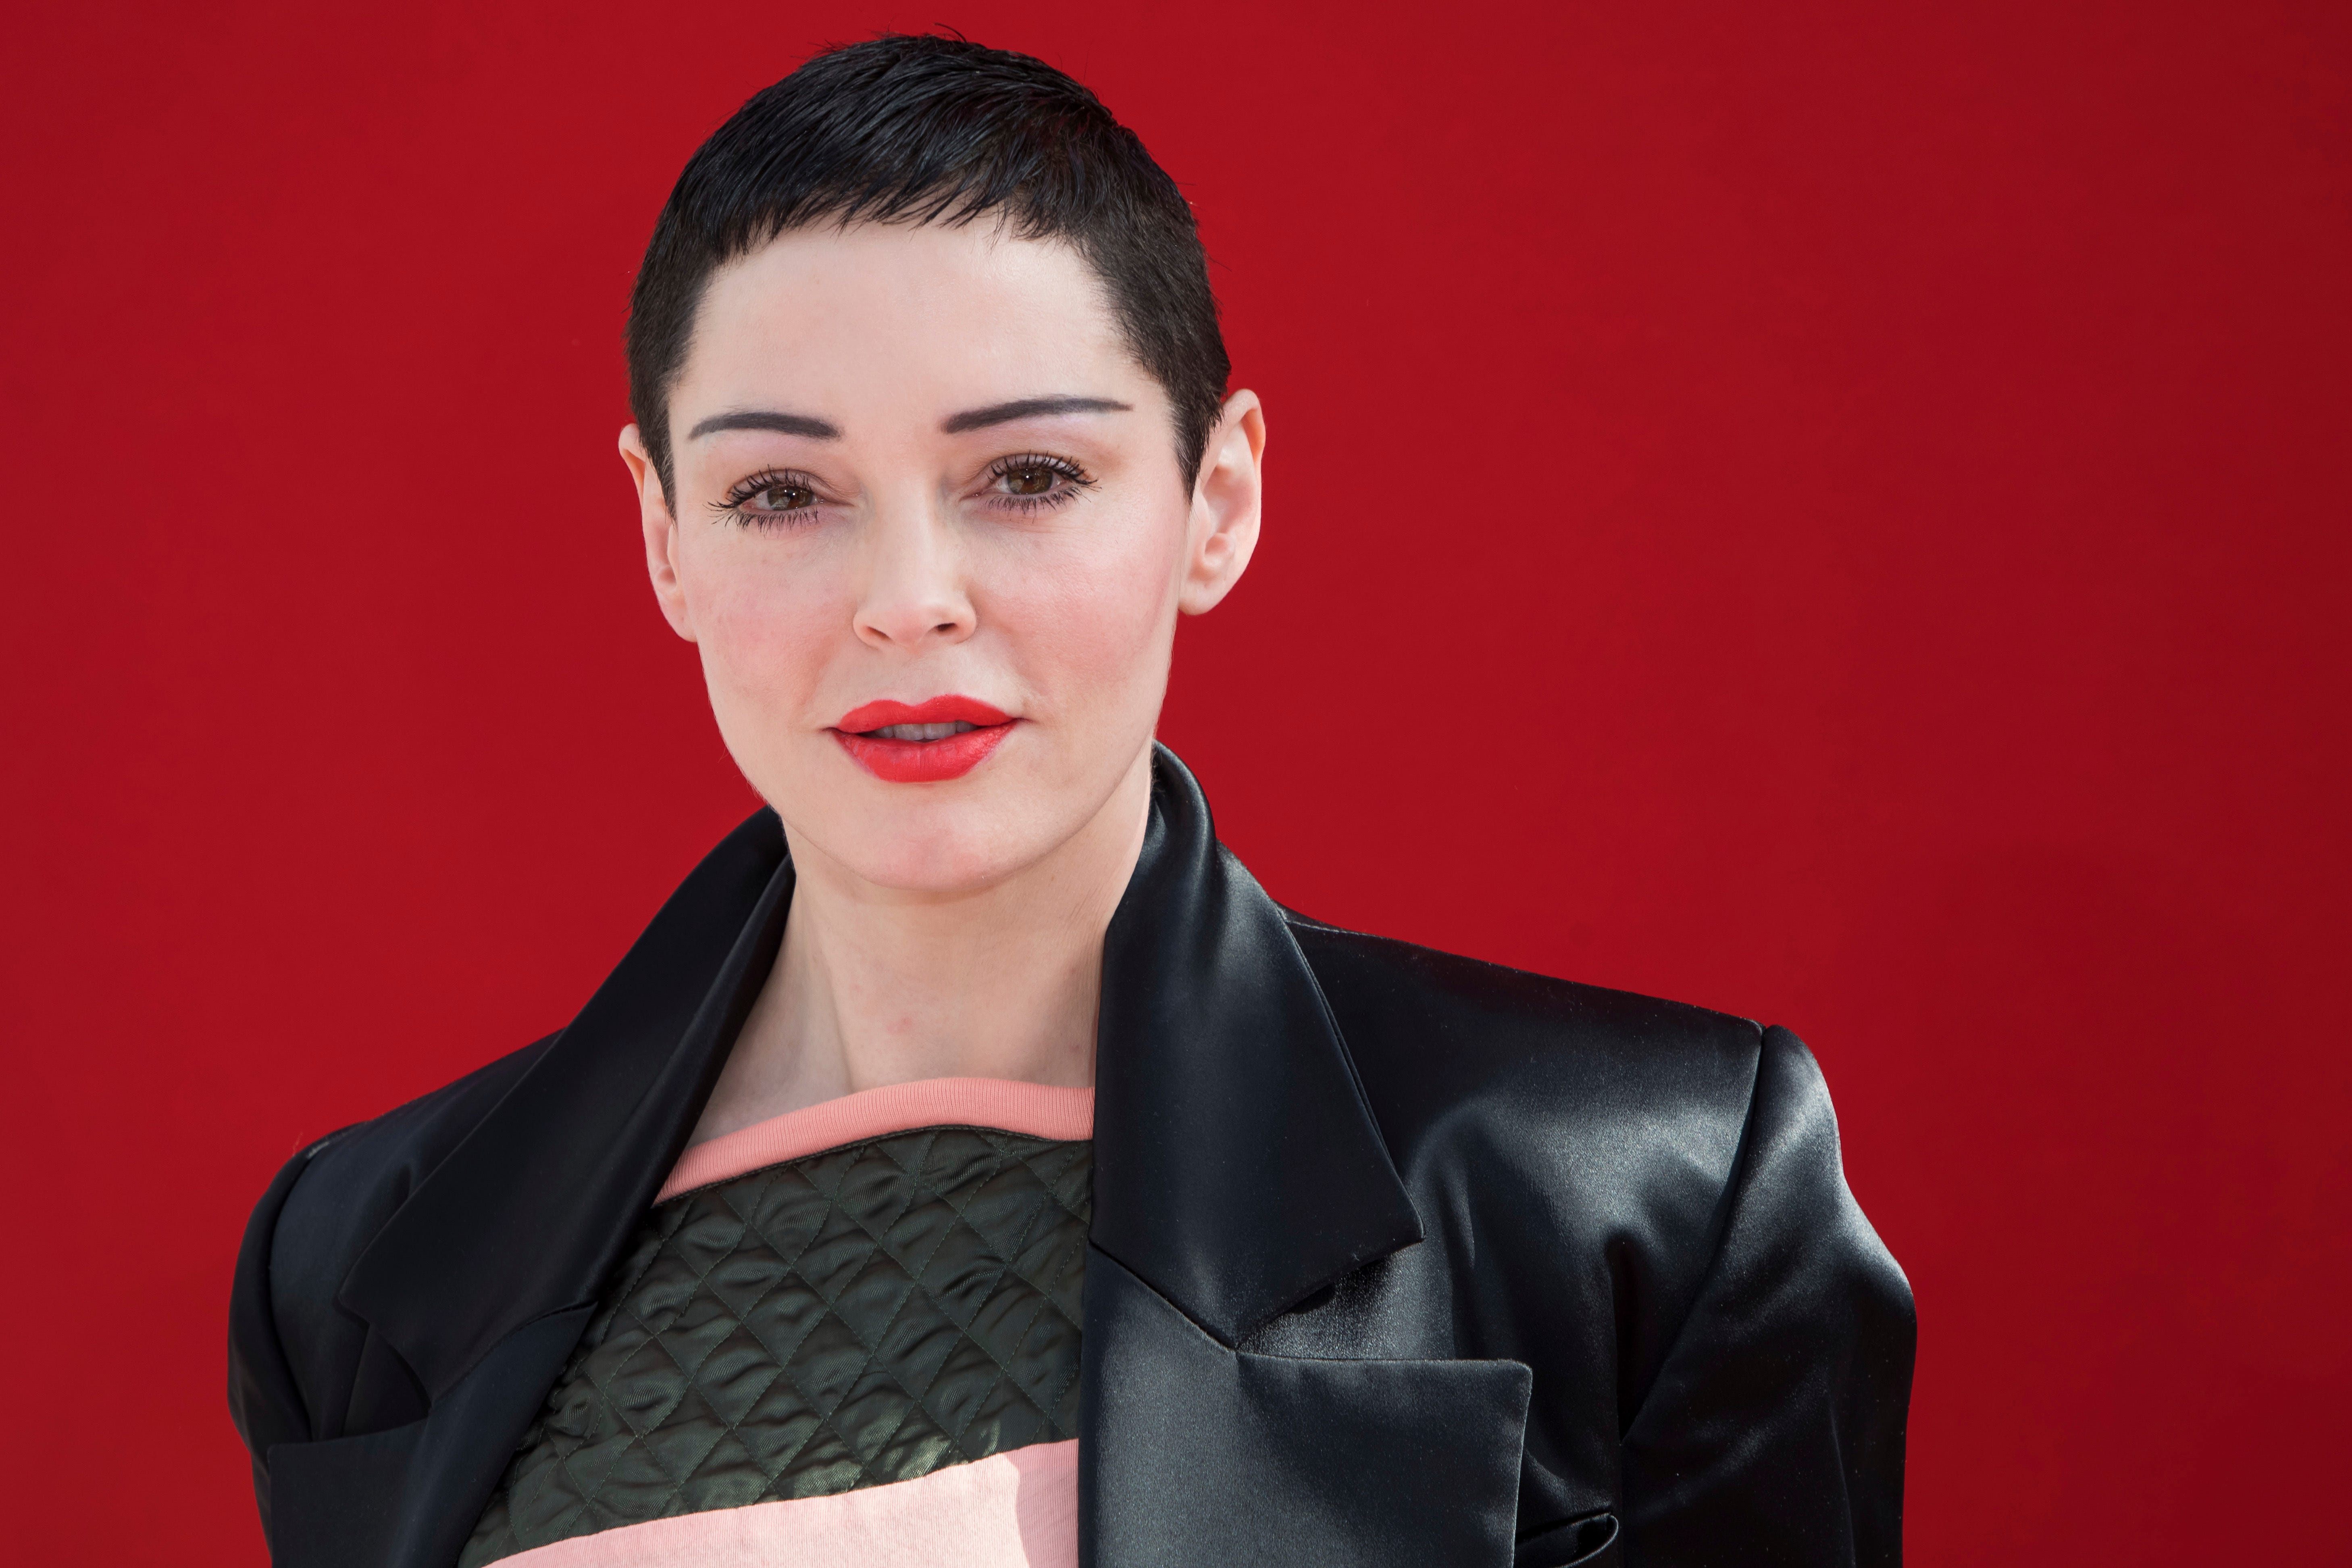 Discussion on this topic: Sara Topham, rose-mcgowan/